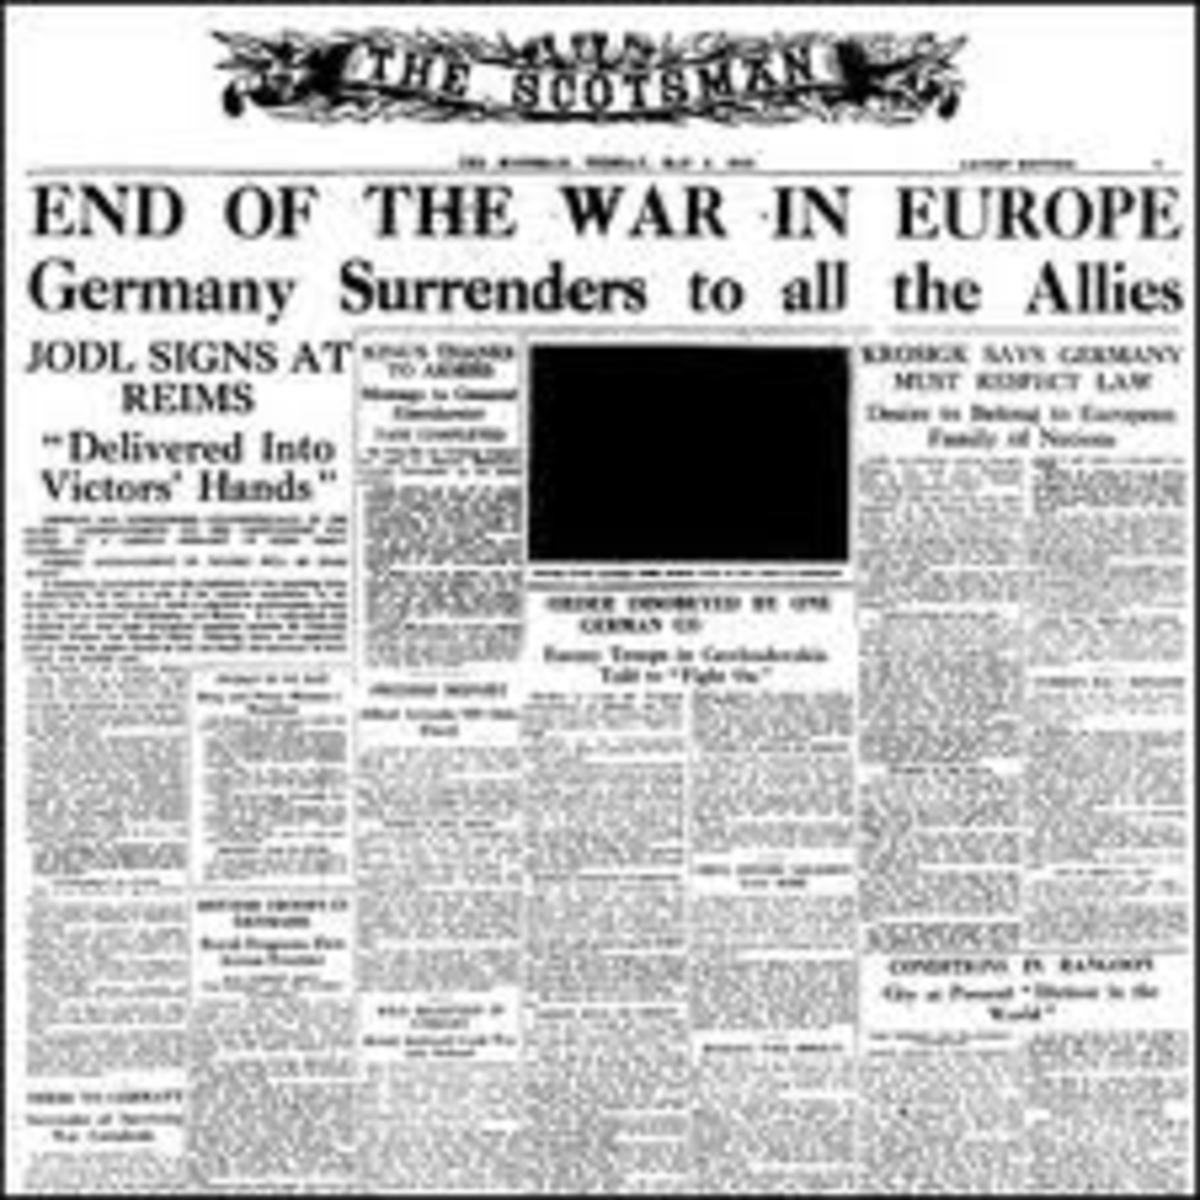 V-E DAY, THE END OF WW II